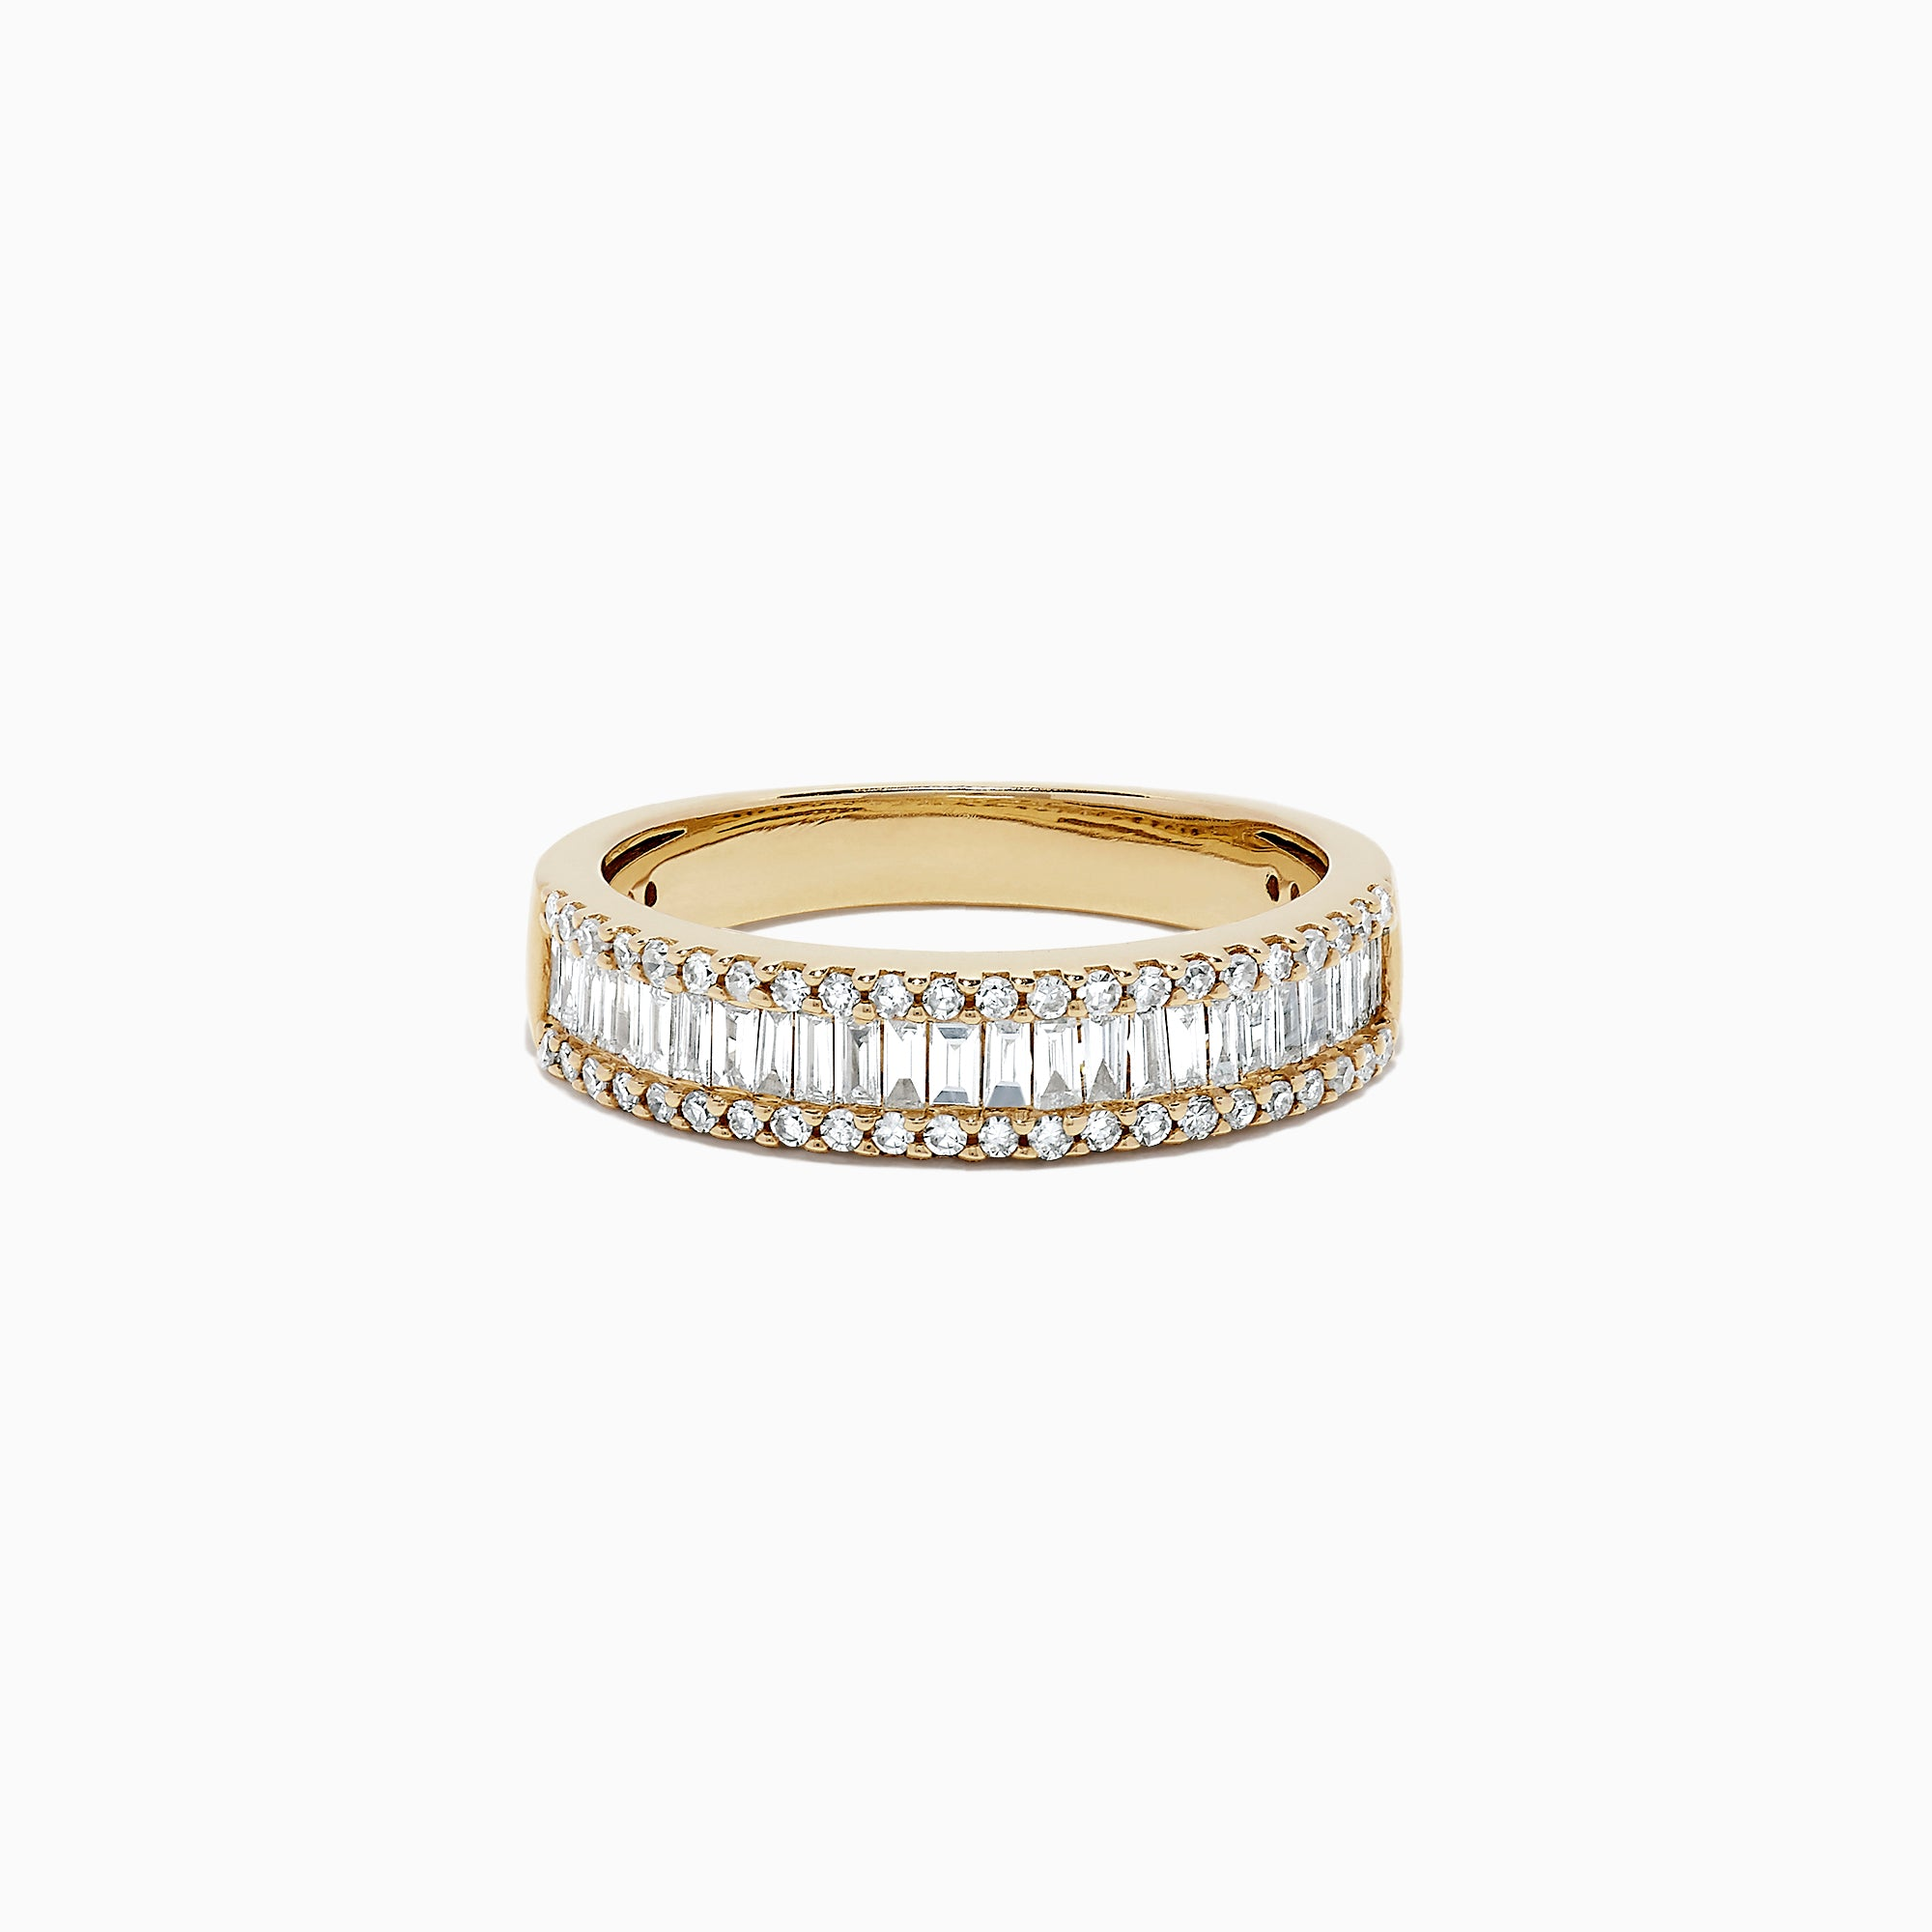 Effy D'Oro 14K Yellow Gold Diamond Ring, 0.73 TCW